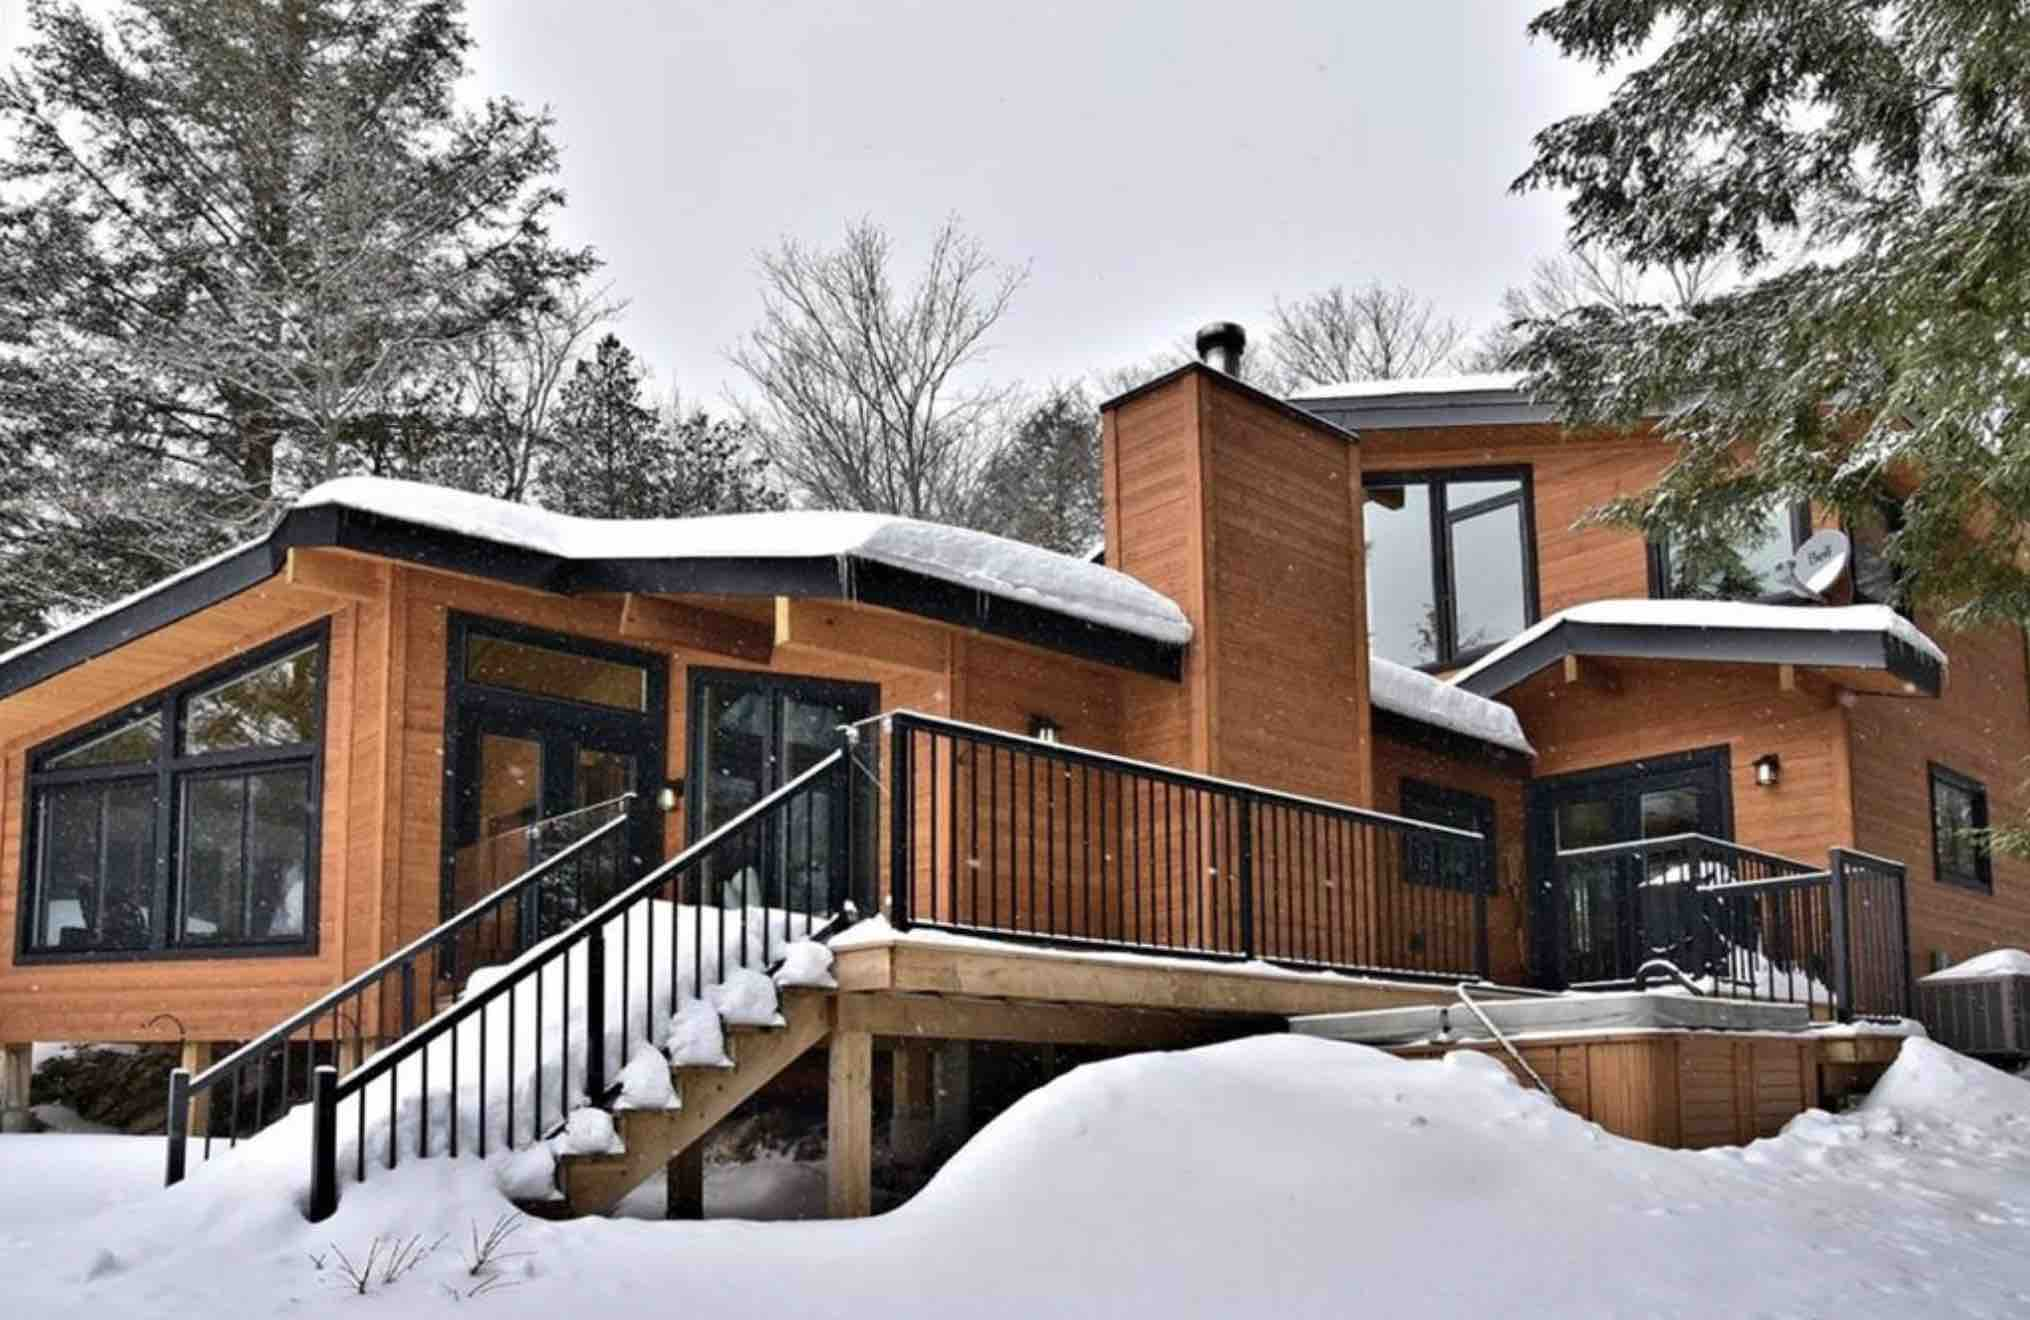 Kennisis Lake Road Cottage for sale exterior in winter